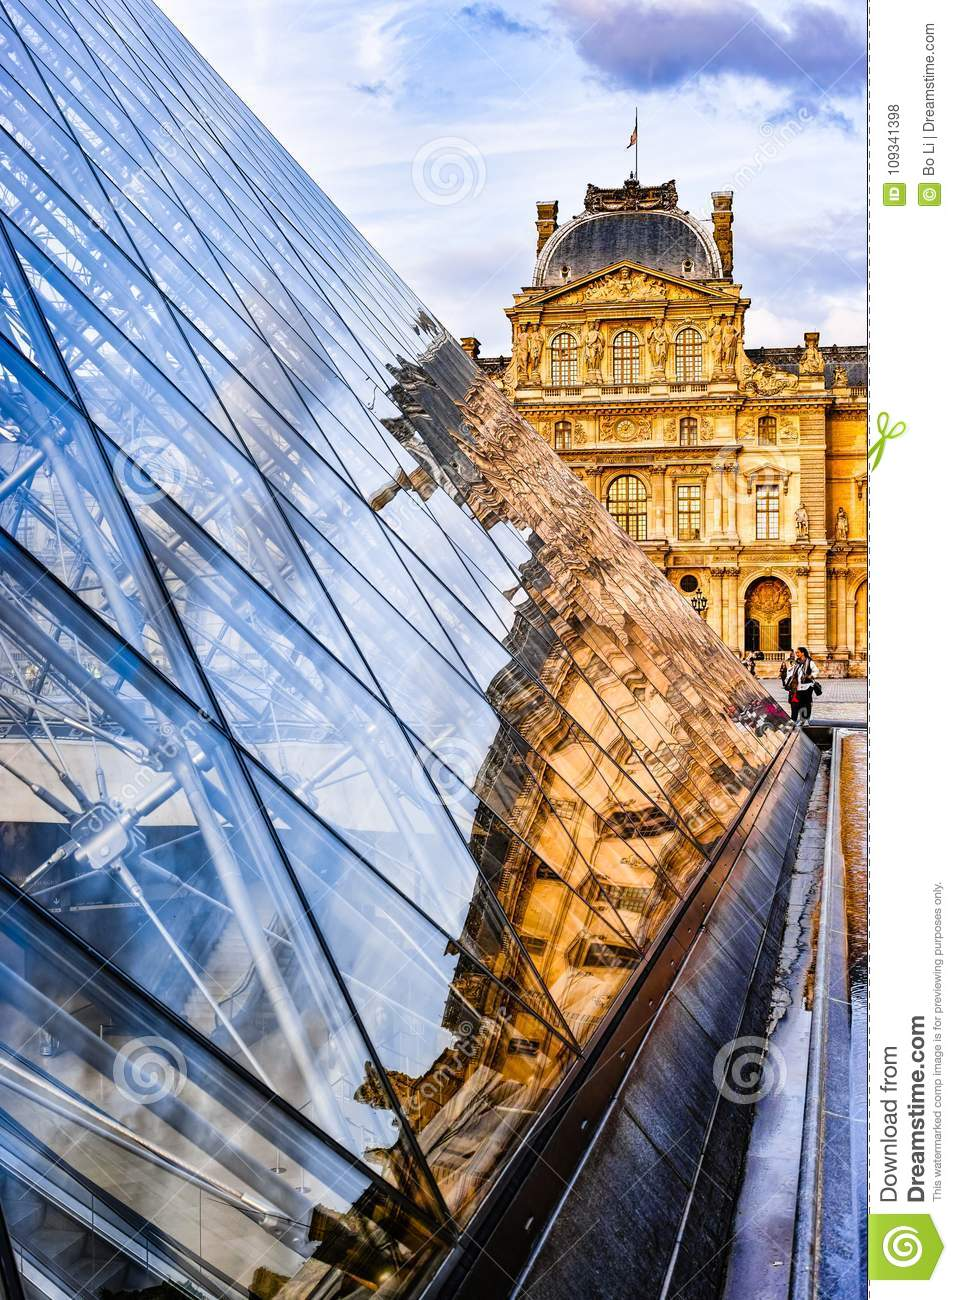 Glass Pyramid and Louvre Museum